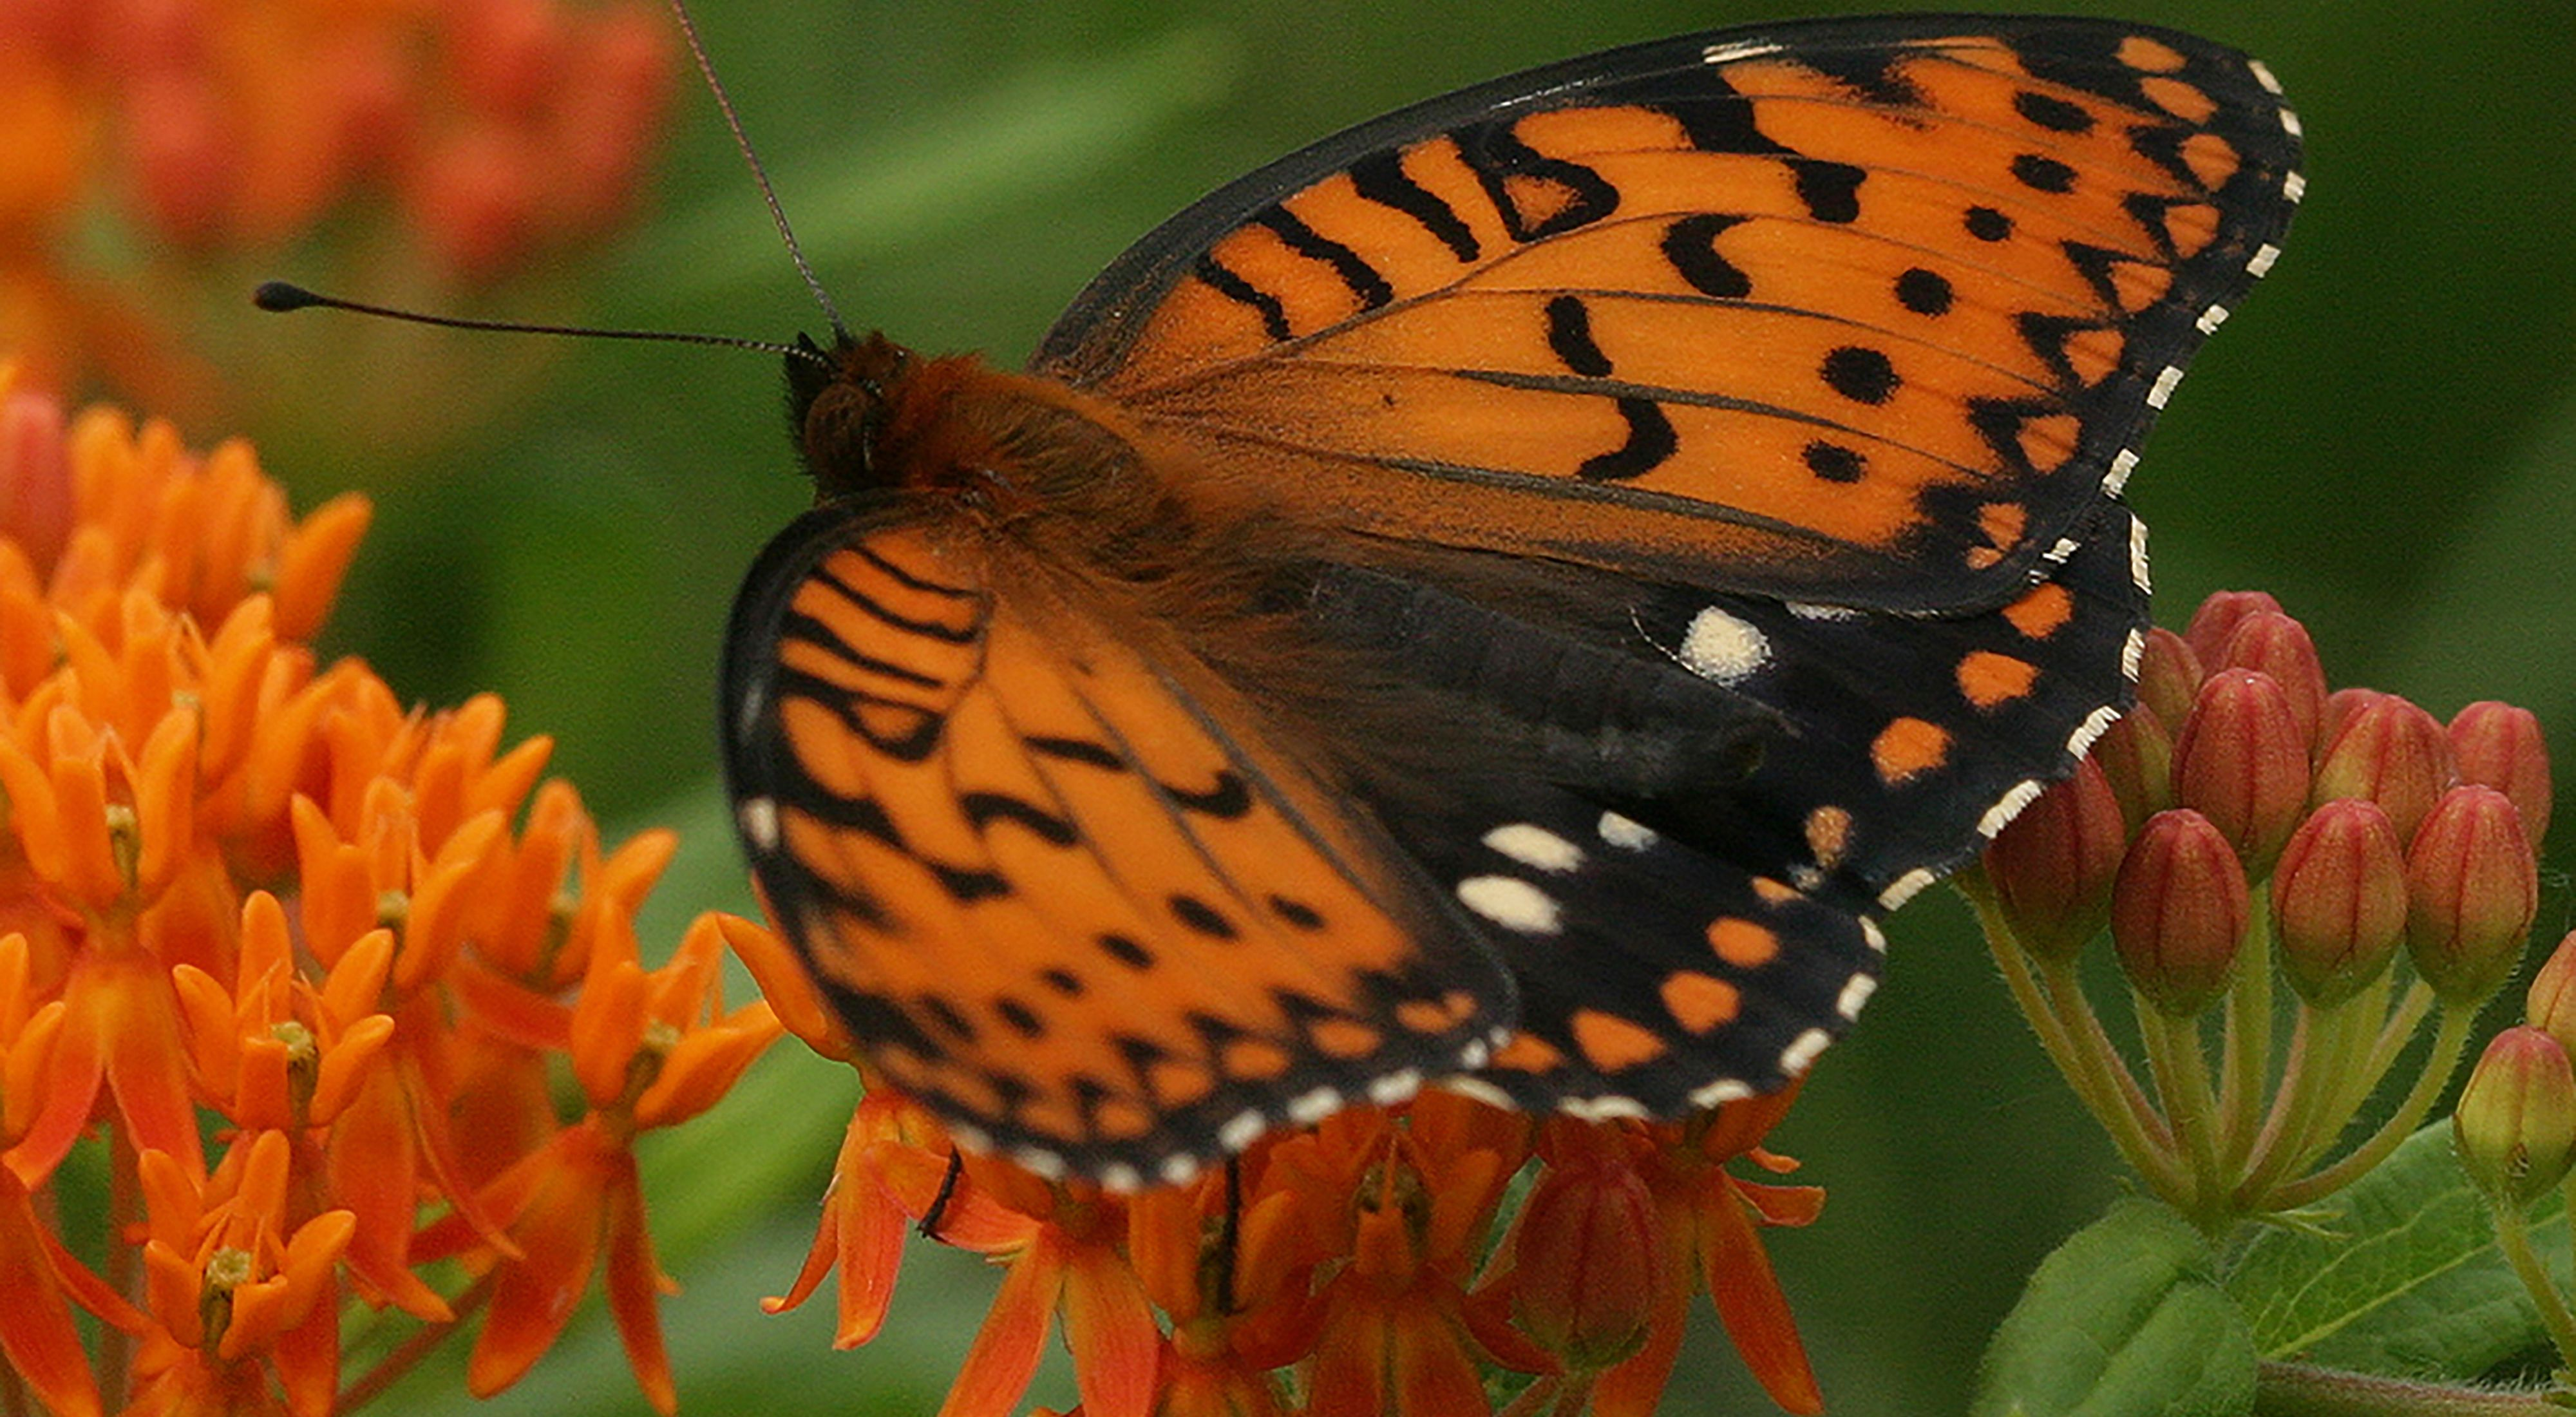 Closeup of an orange, black and brown butterfly on orange flowers.